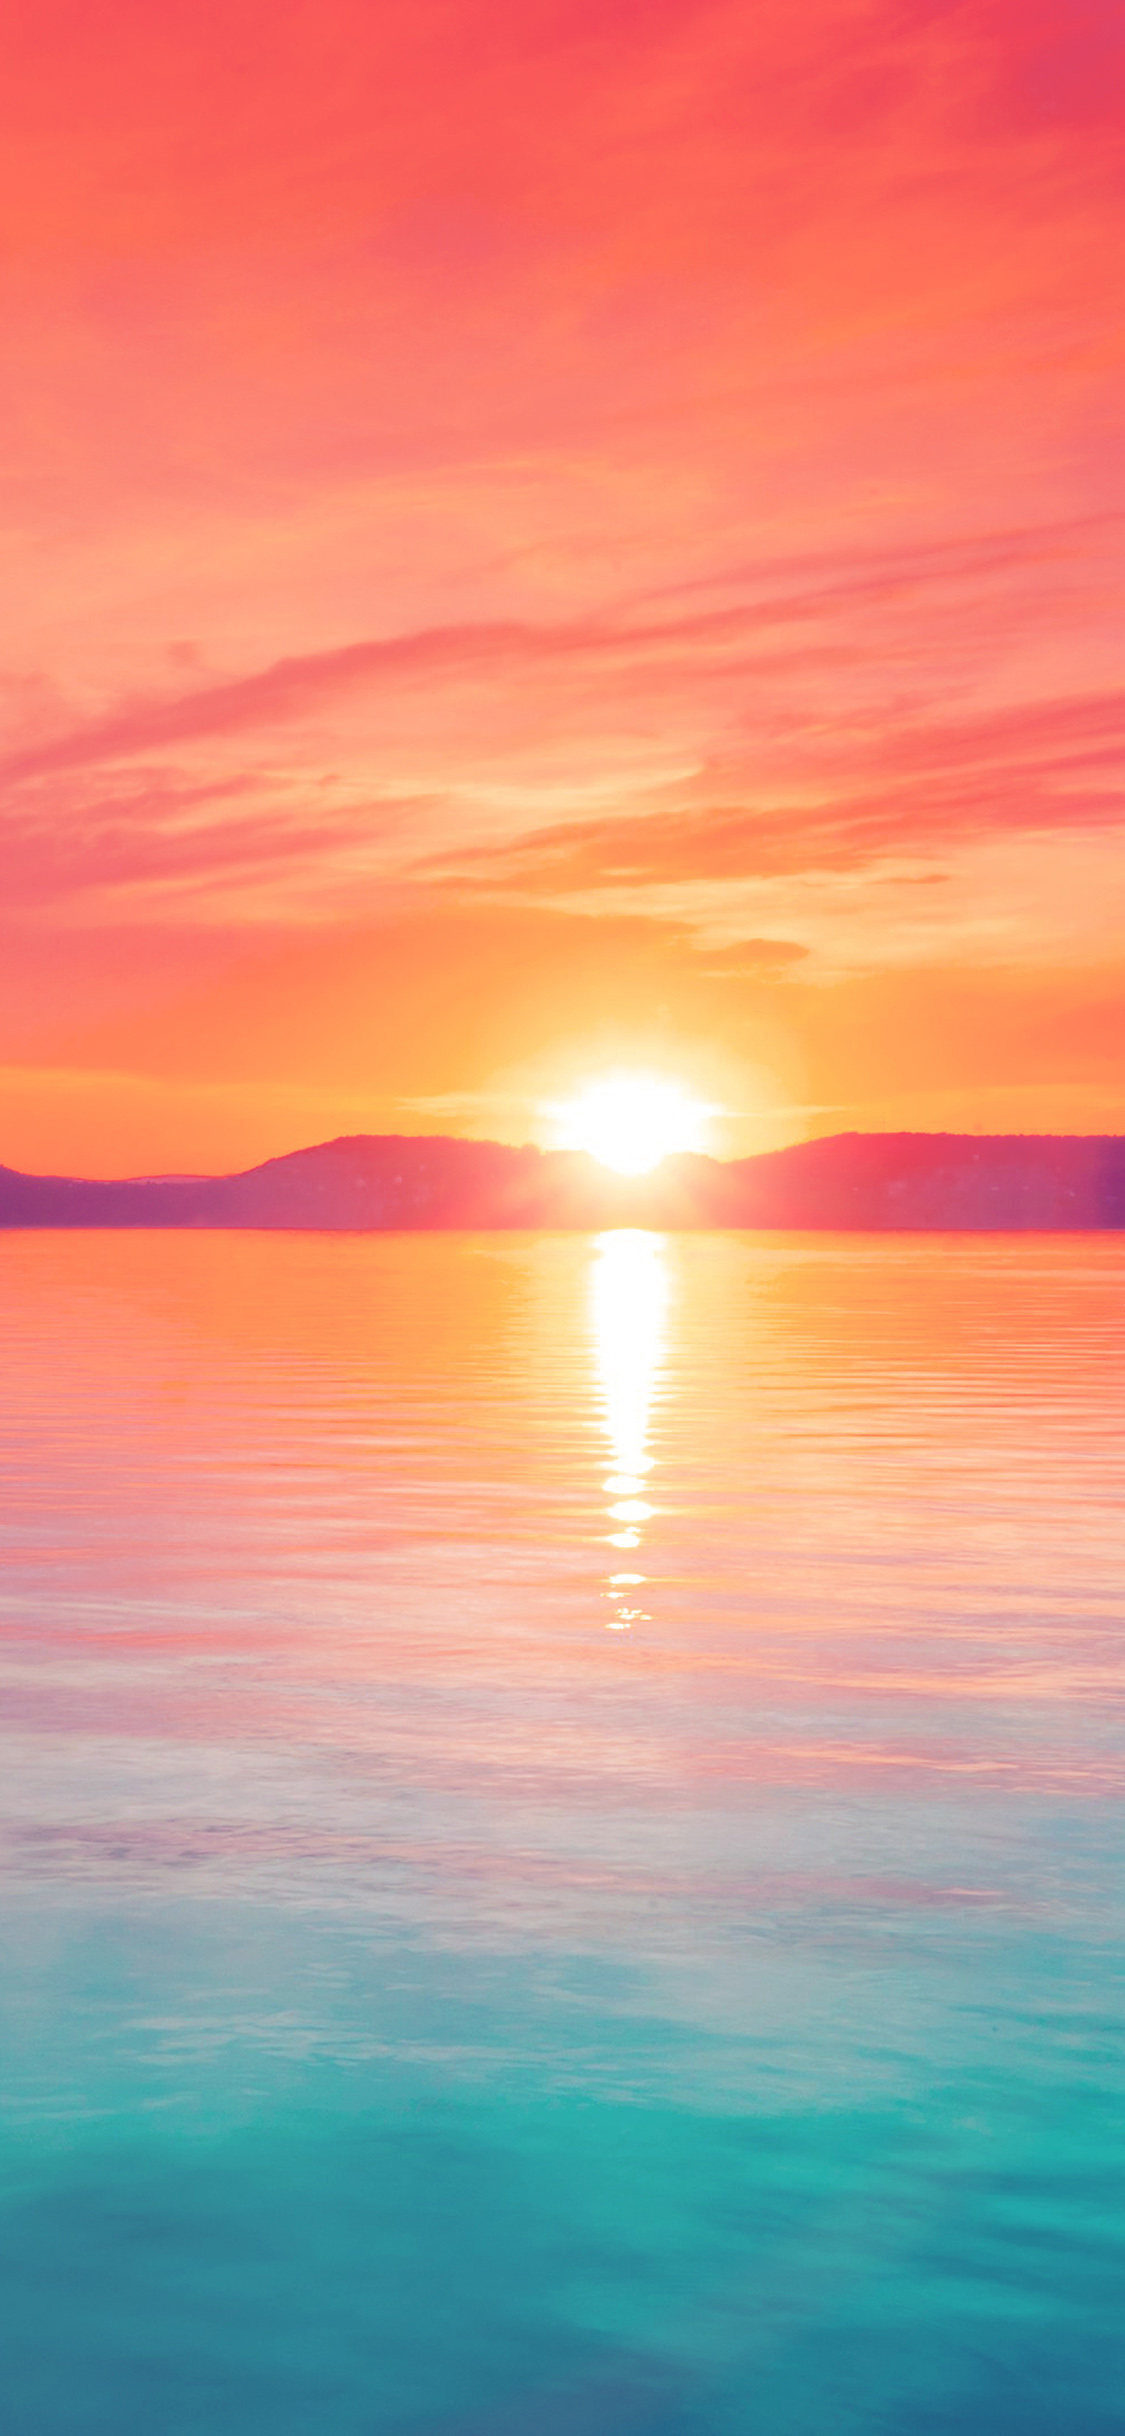 Anime Wallpaper Iphone X Mq41 Sunset Night Lake Water Sky Red Flare Papers Co